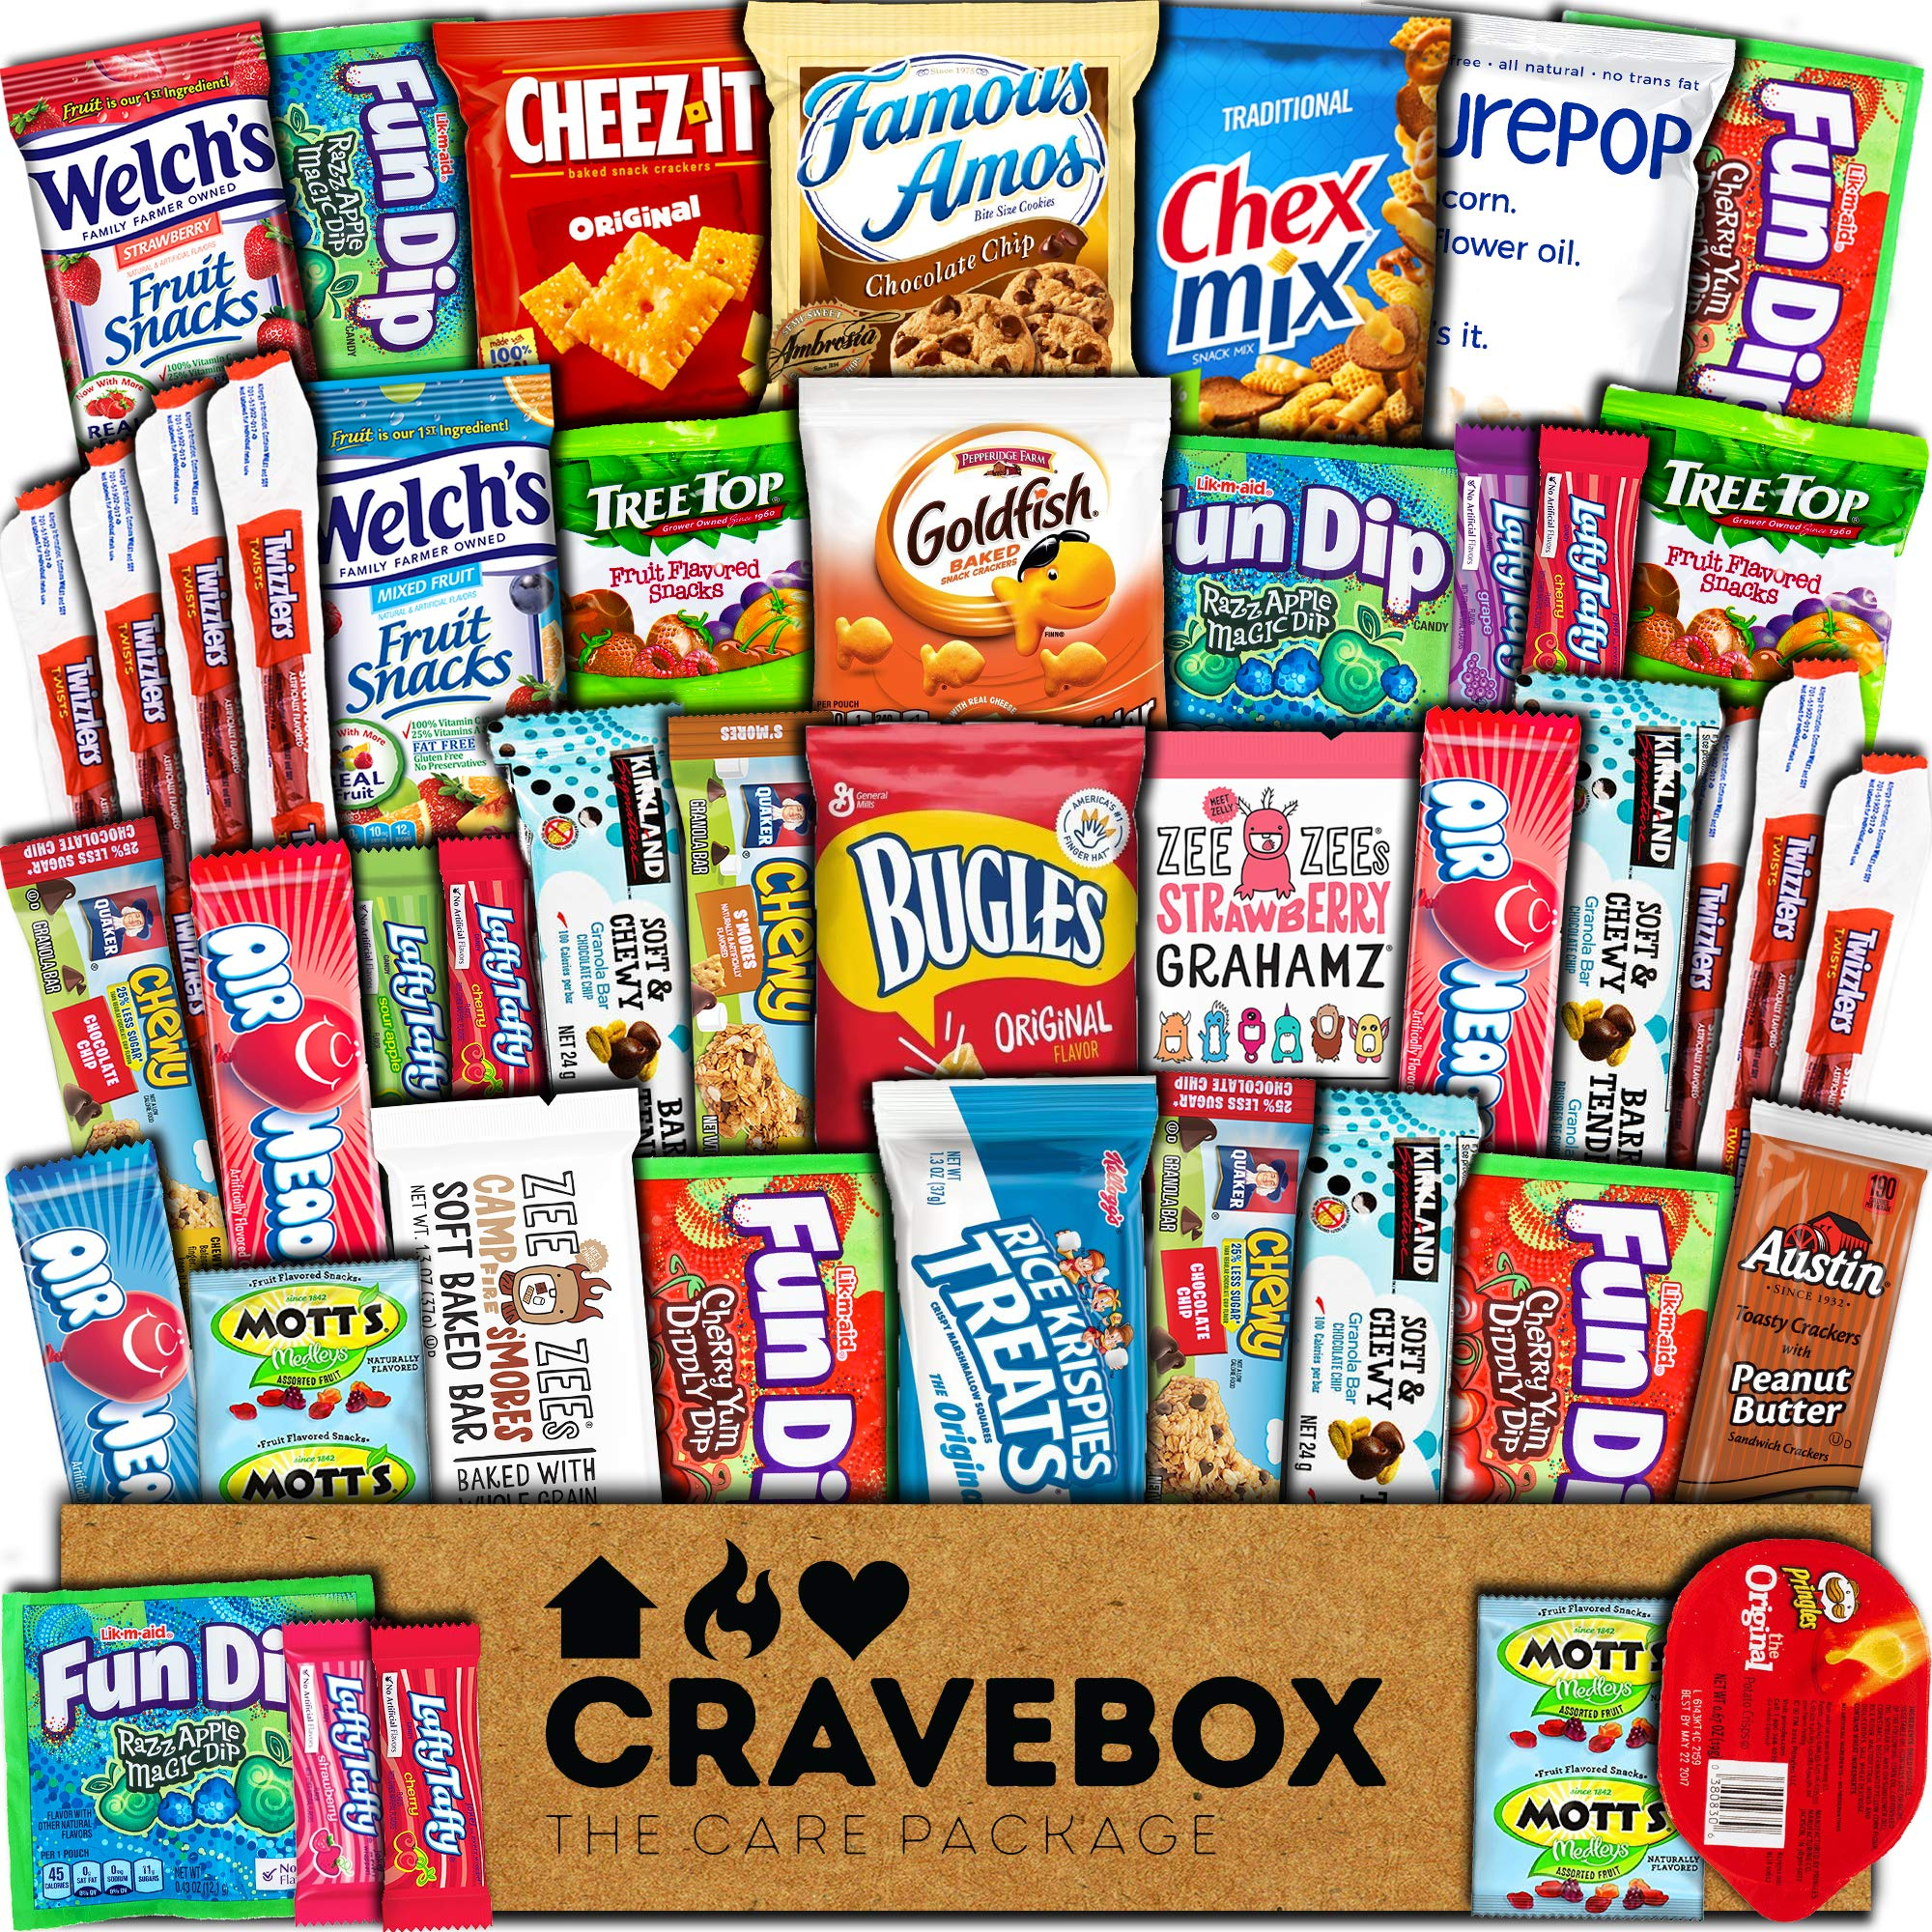 CraveBox Care Package (45 Count) Snacks Cookies Bars Chips Candy Ultimate Variety Gift Box Pack Assortment Basket Bundle Mixed Bulk Sampler Treats College Students Office Fall Back to School Halloween by CRAVEBOX